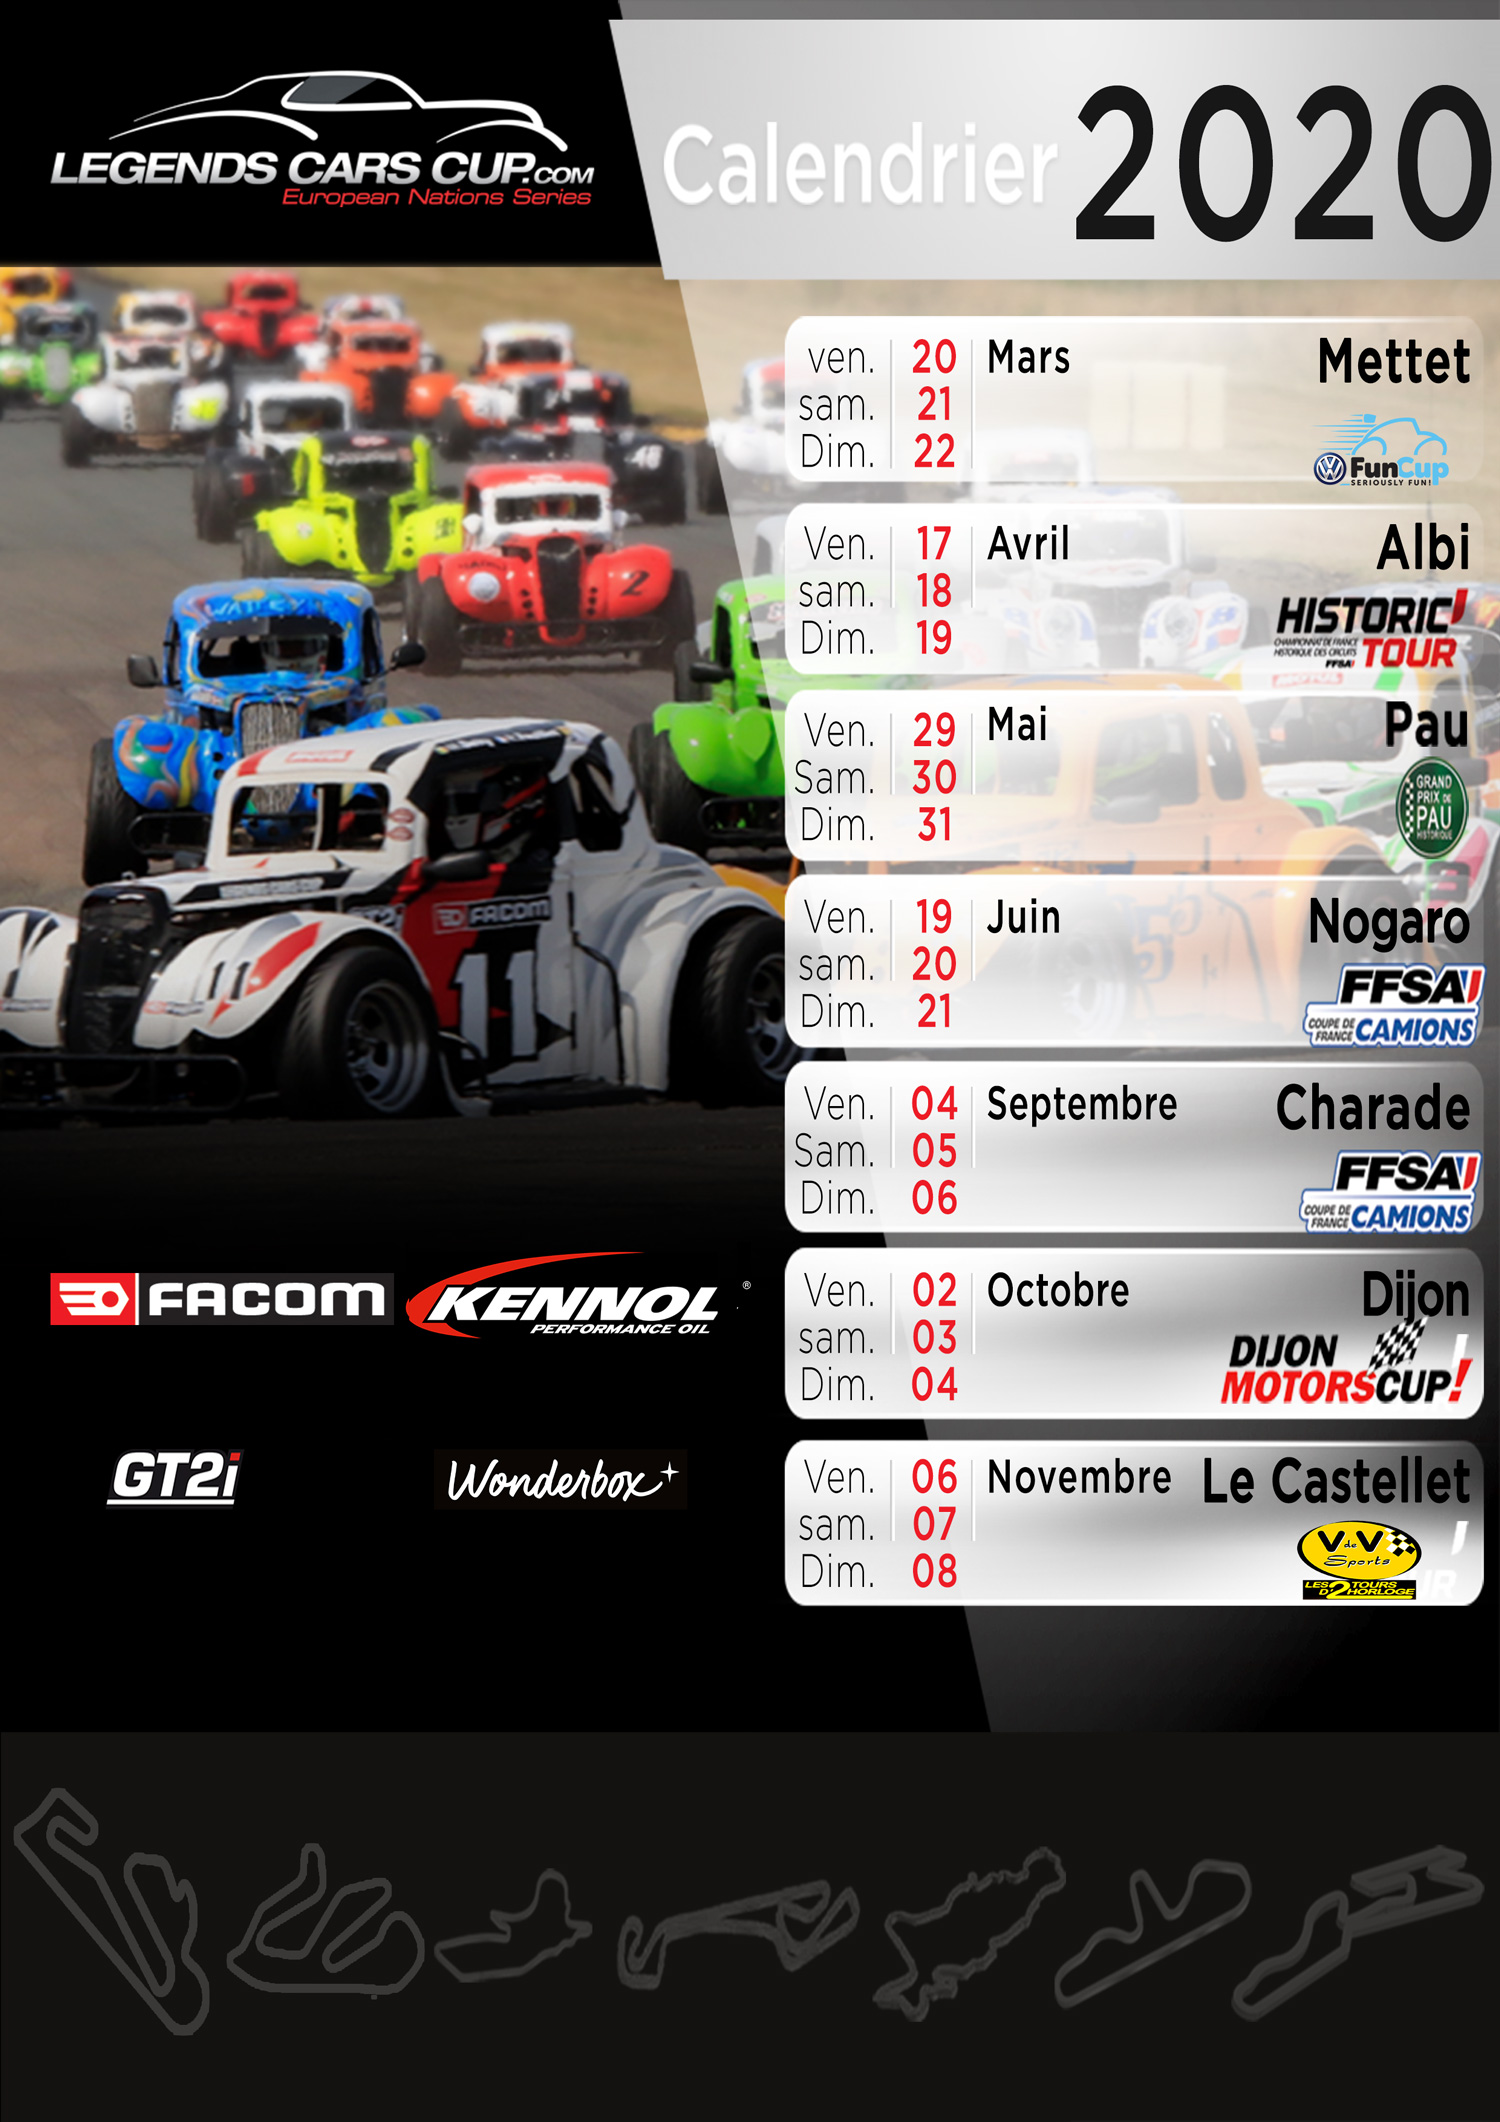 Calendrier 2020 Legends Cars Cup